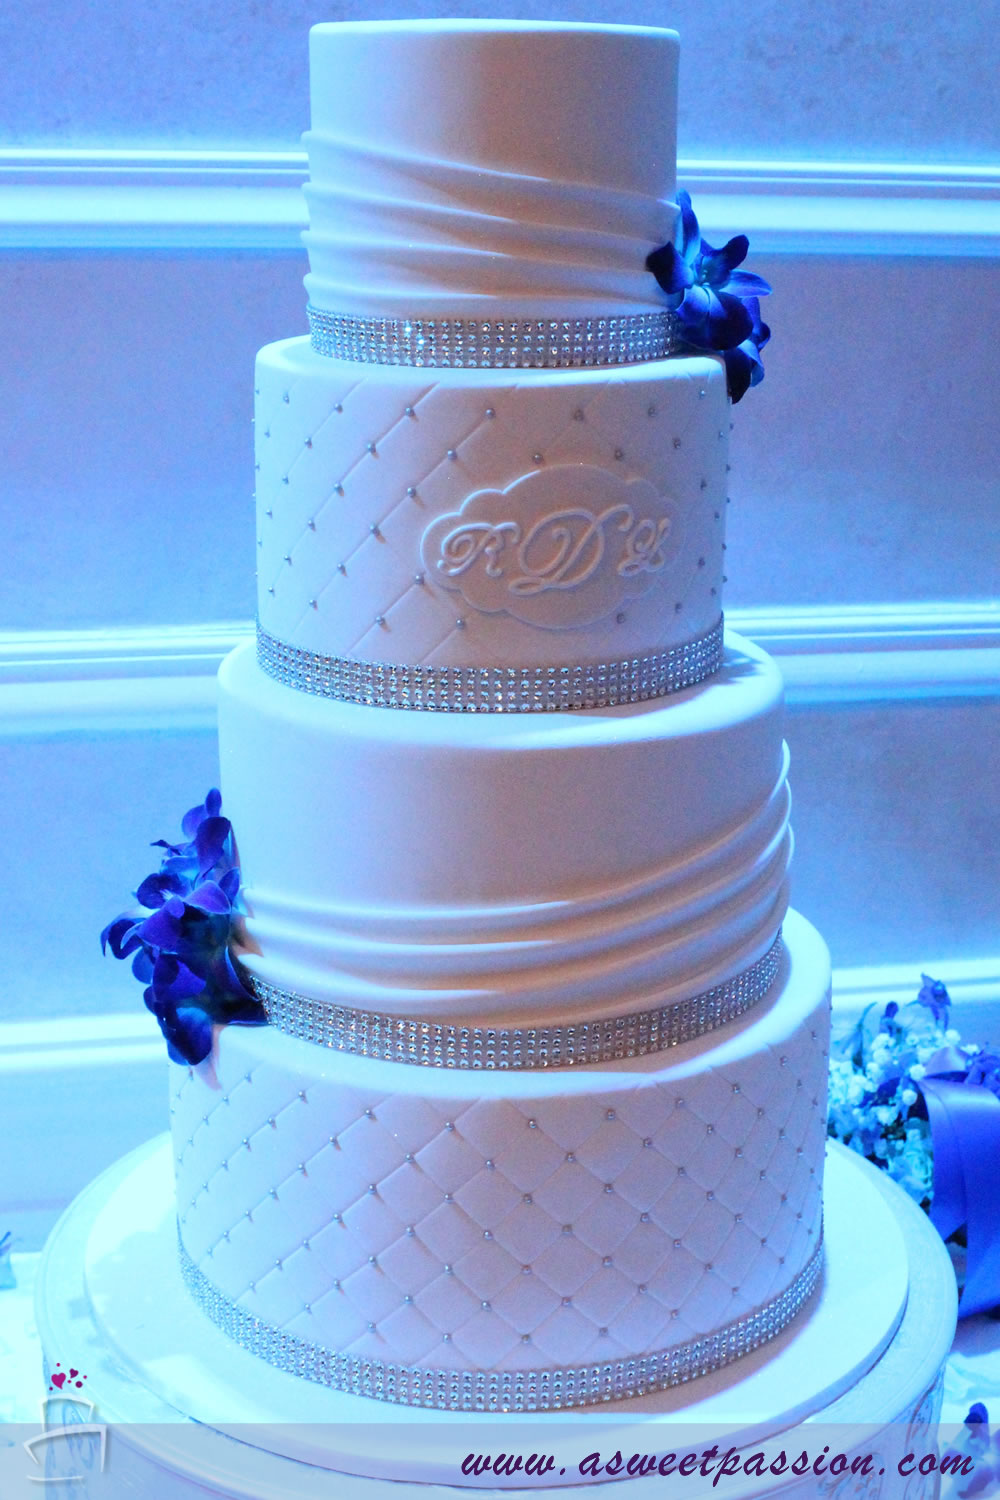 White Bling Wedding Cake – Sweet Passion Cakery